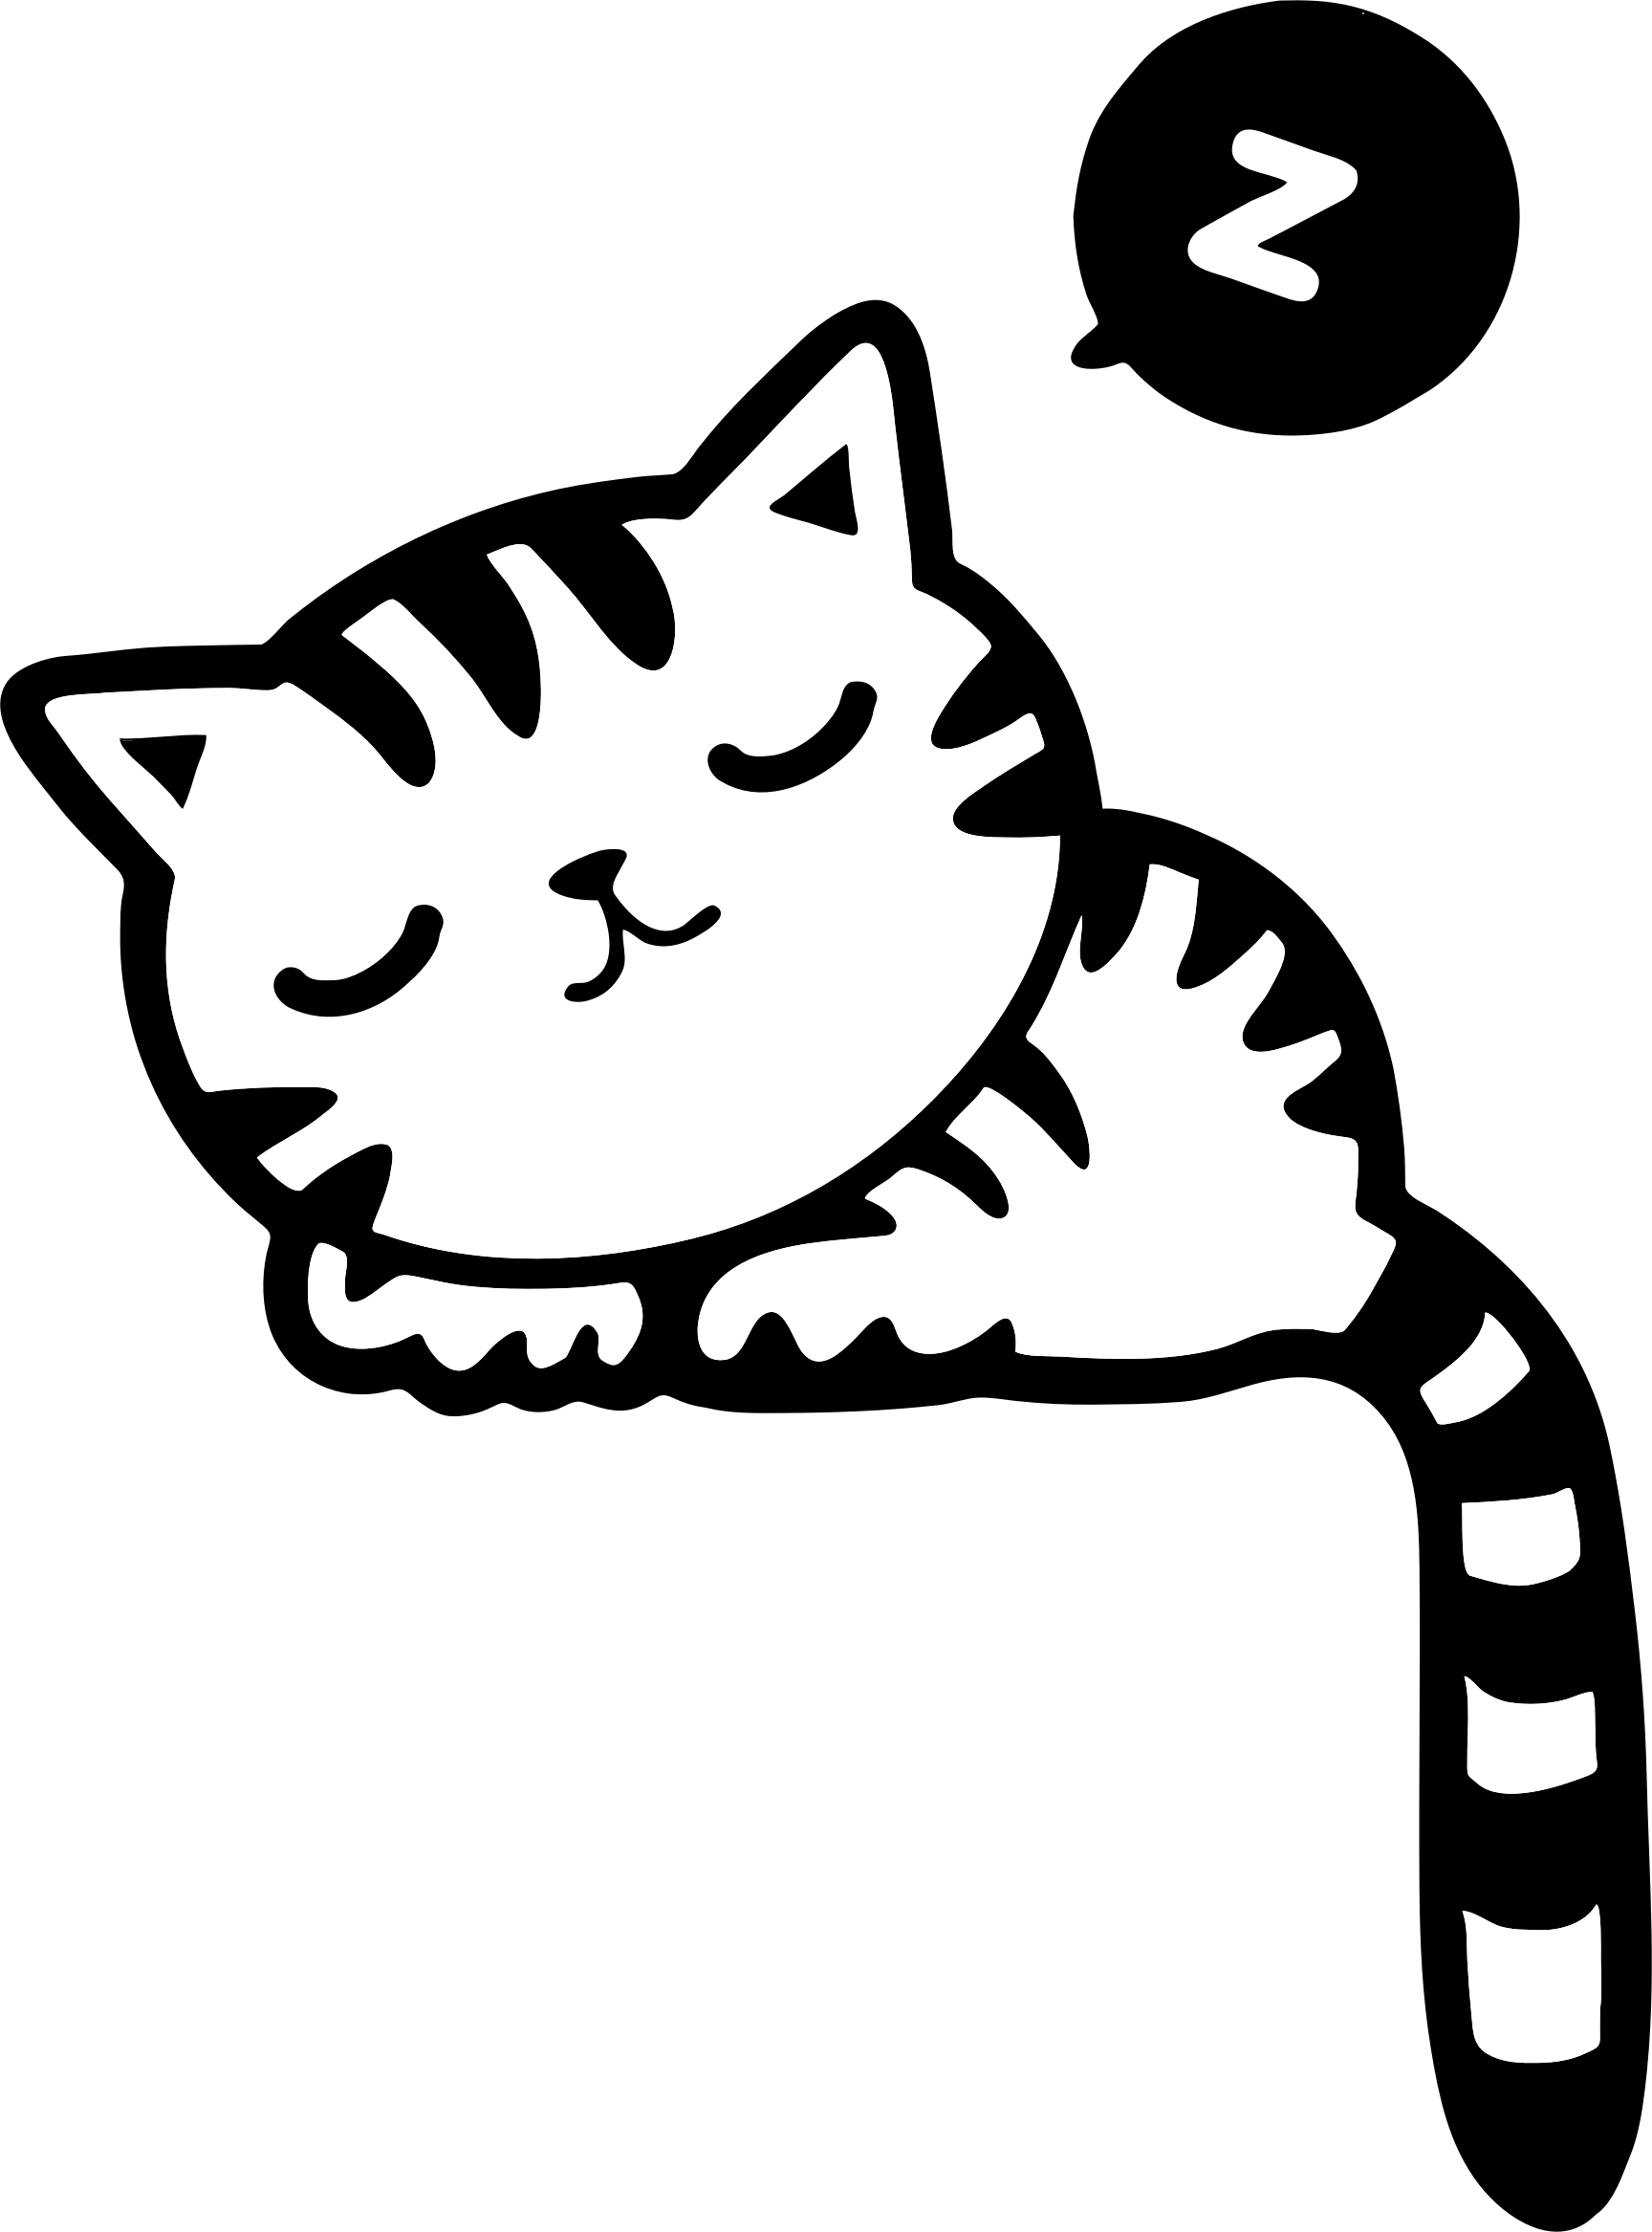 Sleeping at school clipart clipart black and white stock Clipart - Sleeping Kitty clipart black and white stock